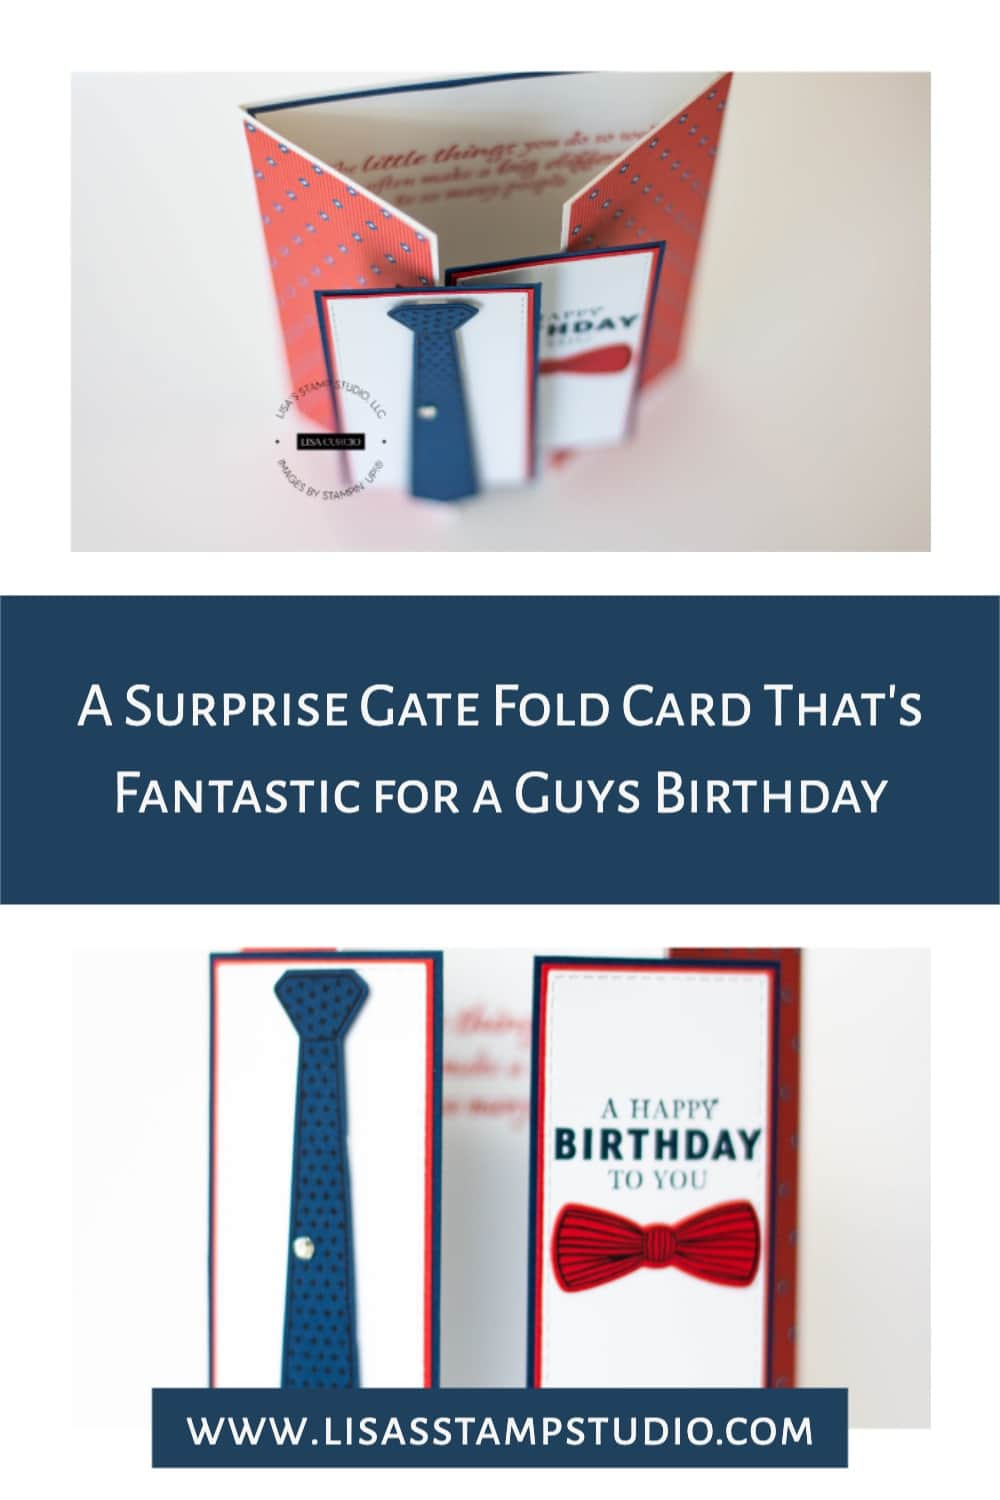 Save this surprise gate fold card to your favorite Pinterest board